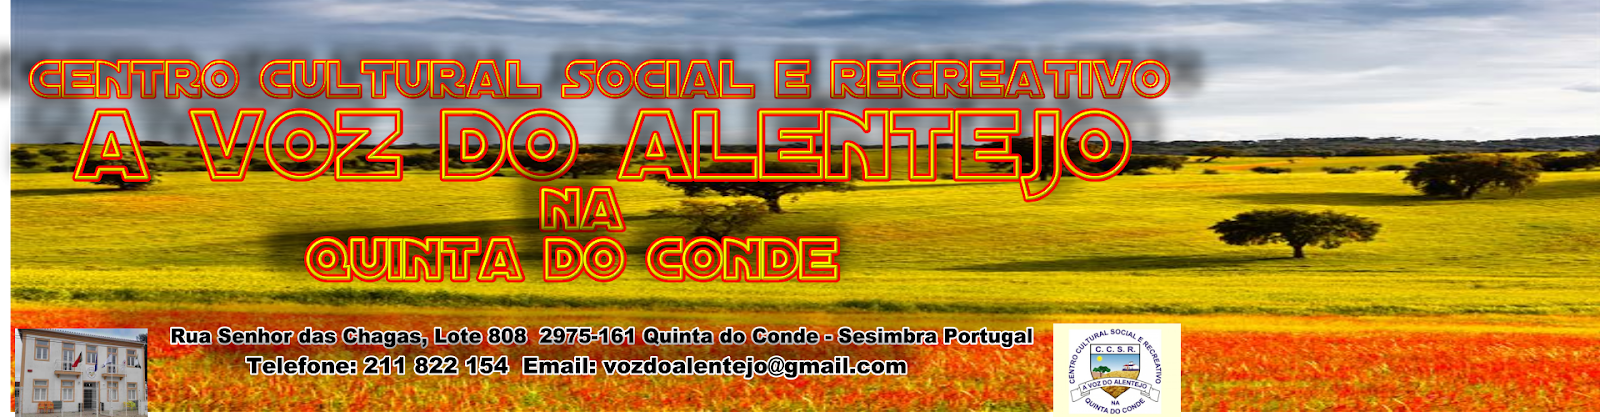 Centro Cultural Social e Recreativo A Voz do Alentejo na Quinta do Conde